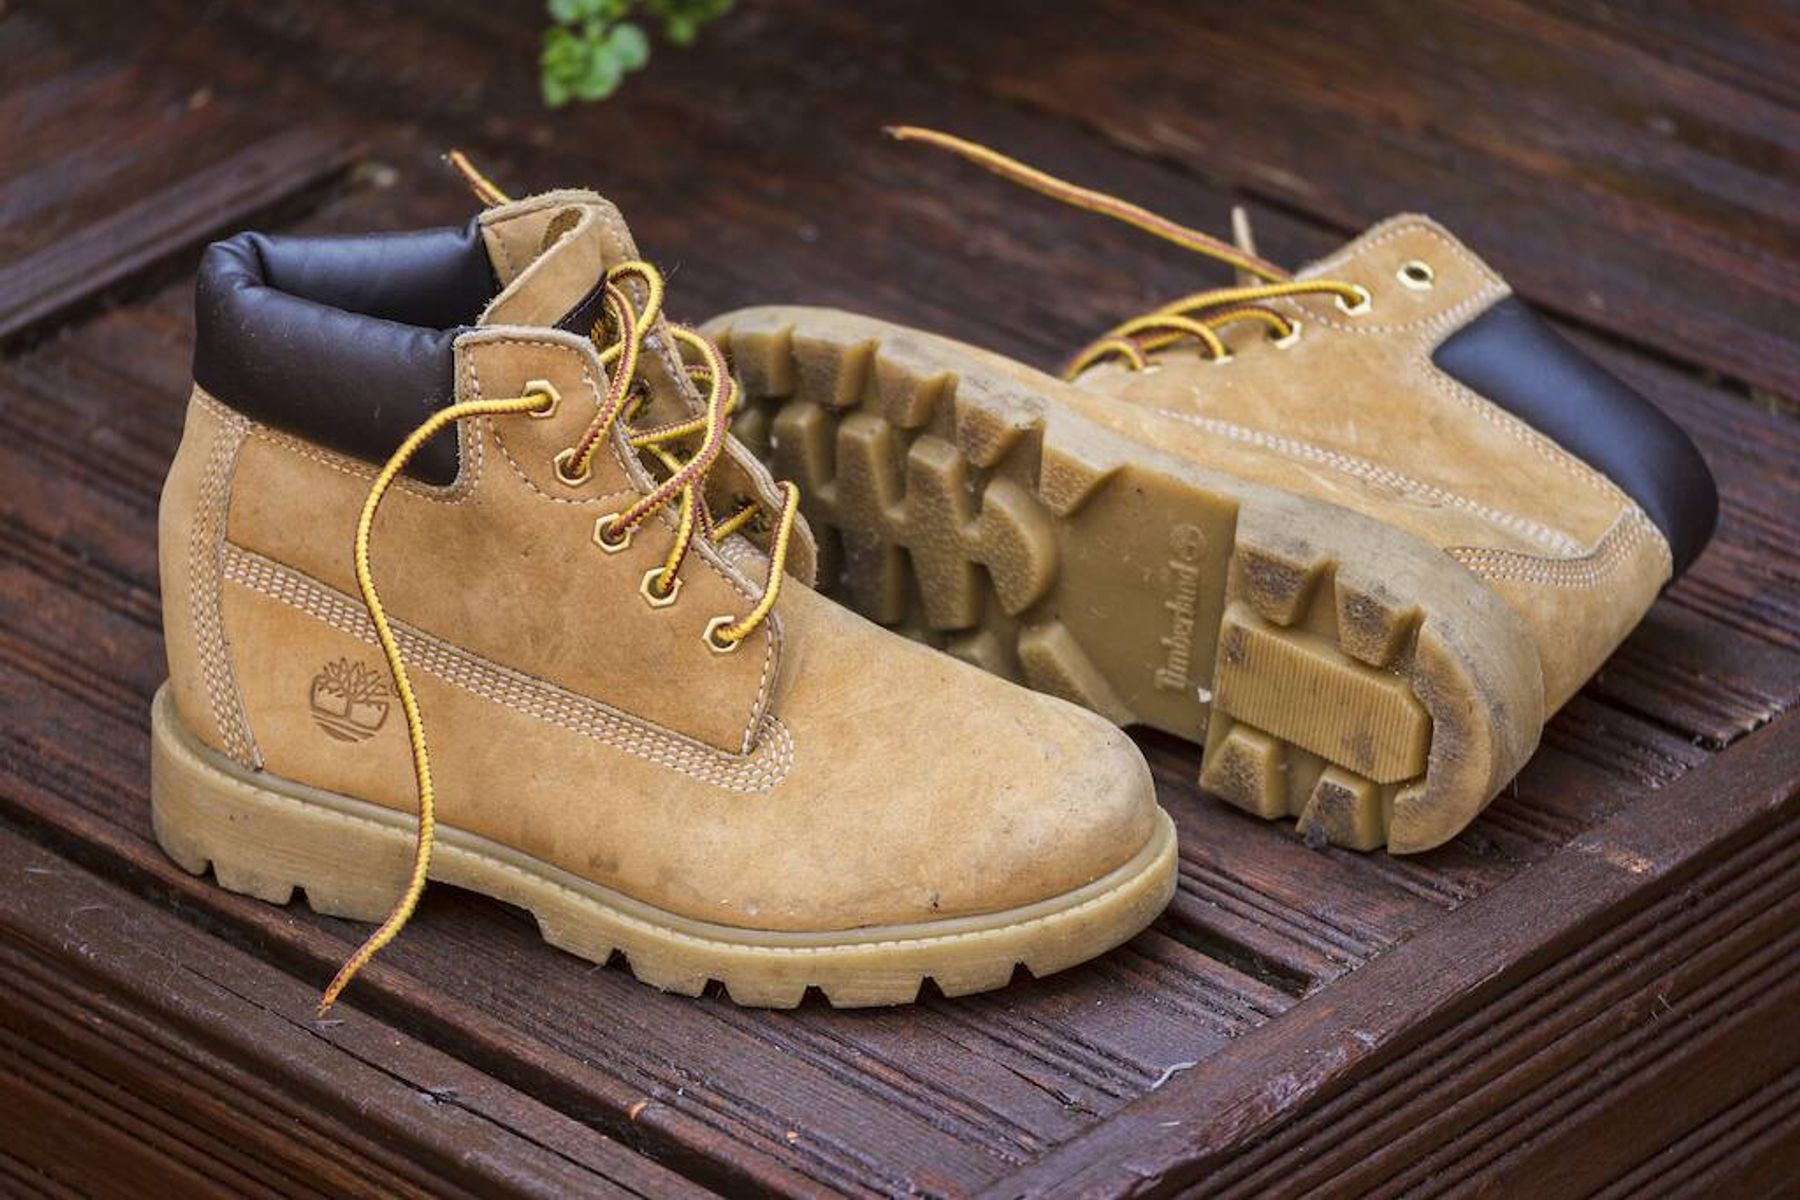 How to clean Timberlands: boots left outside